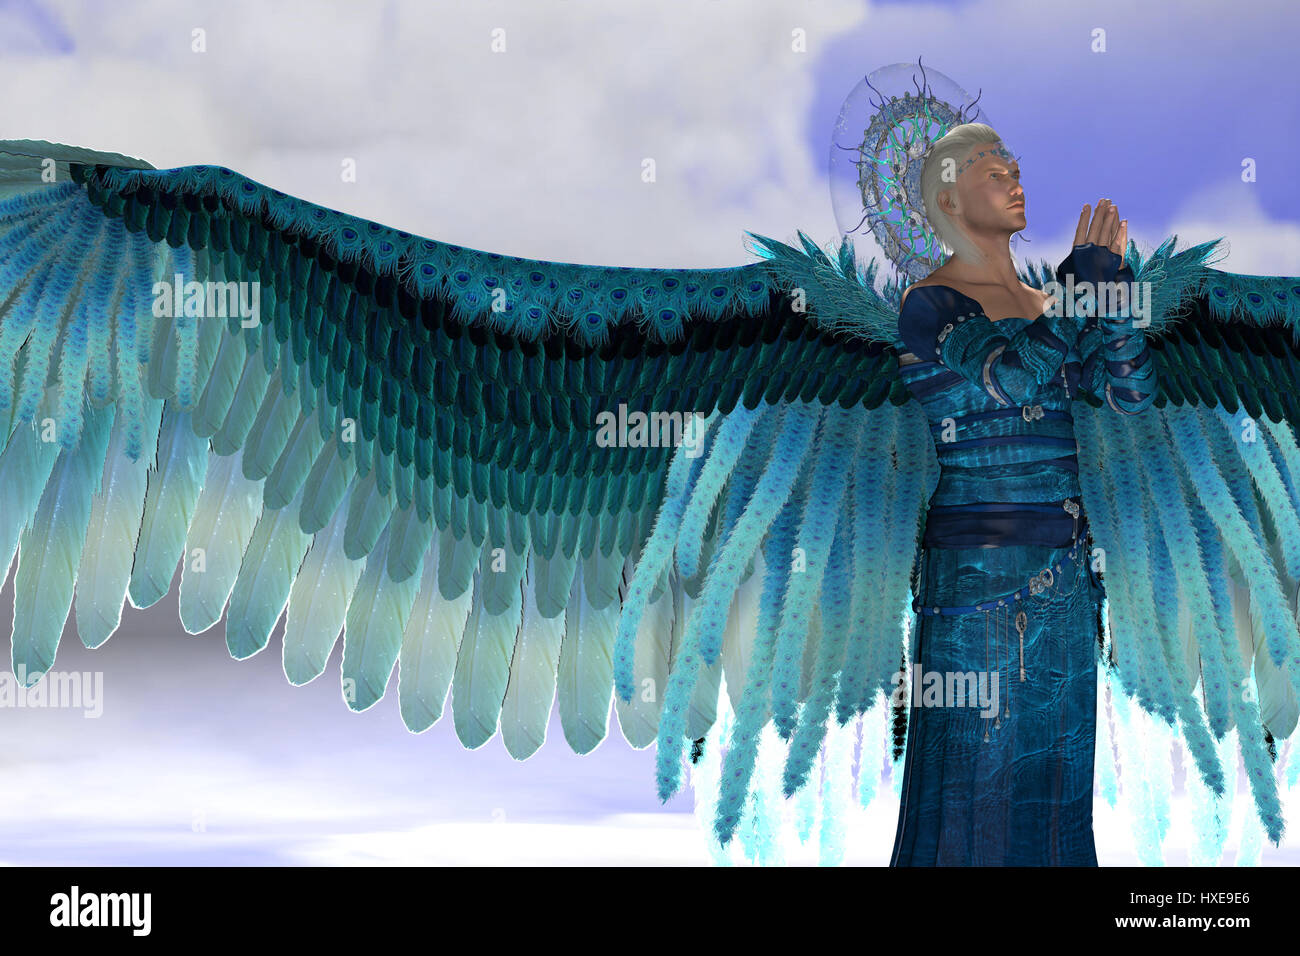 Archangel Michael is a messenger sent by God to speak to people on Earth and leads God's armies against the - Stock Image